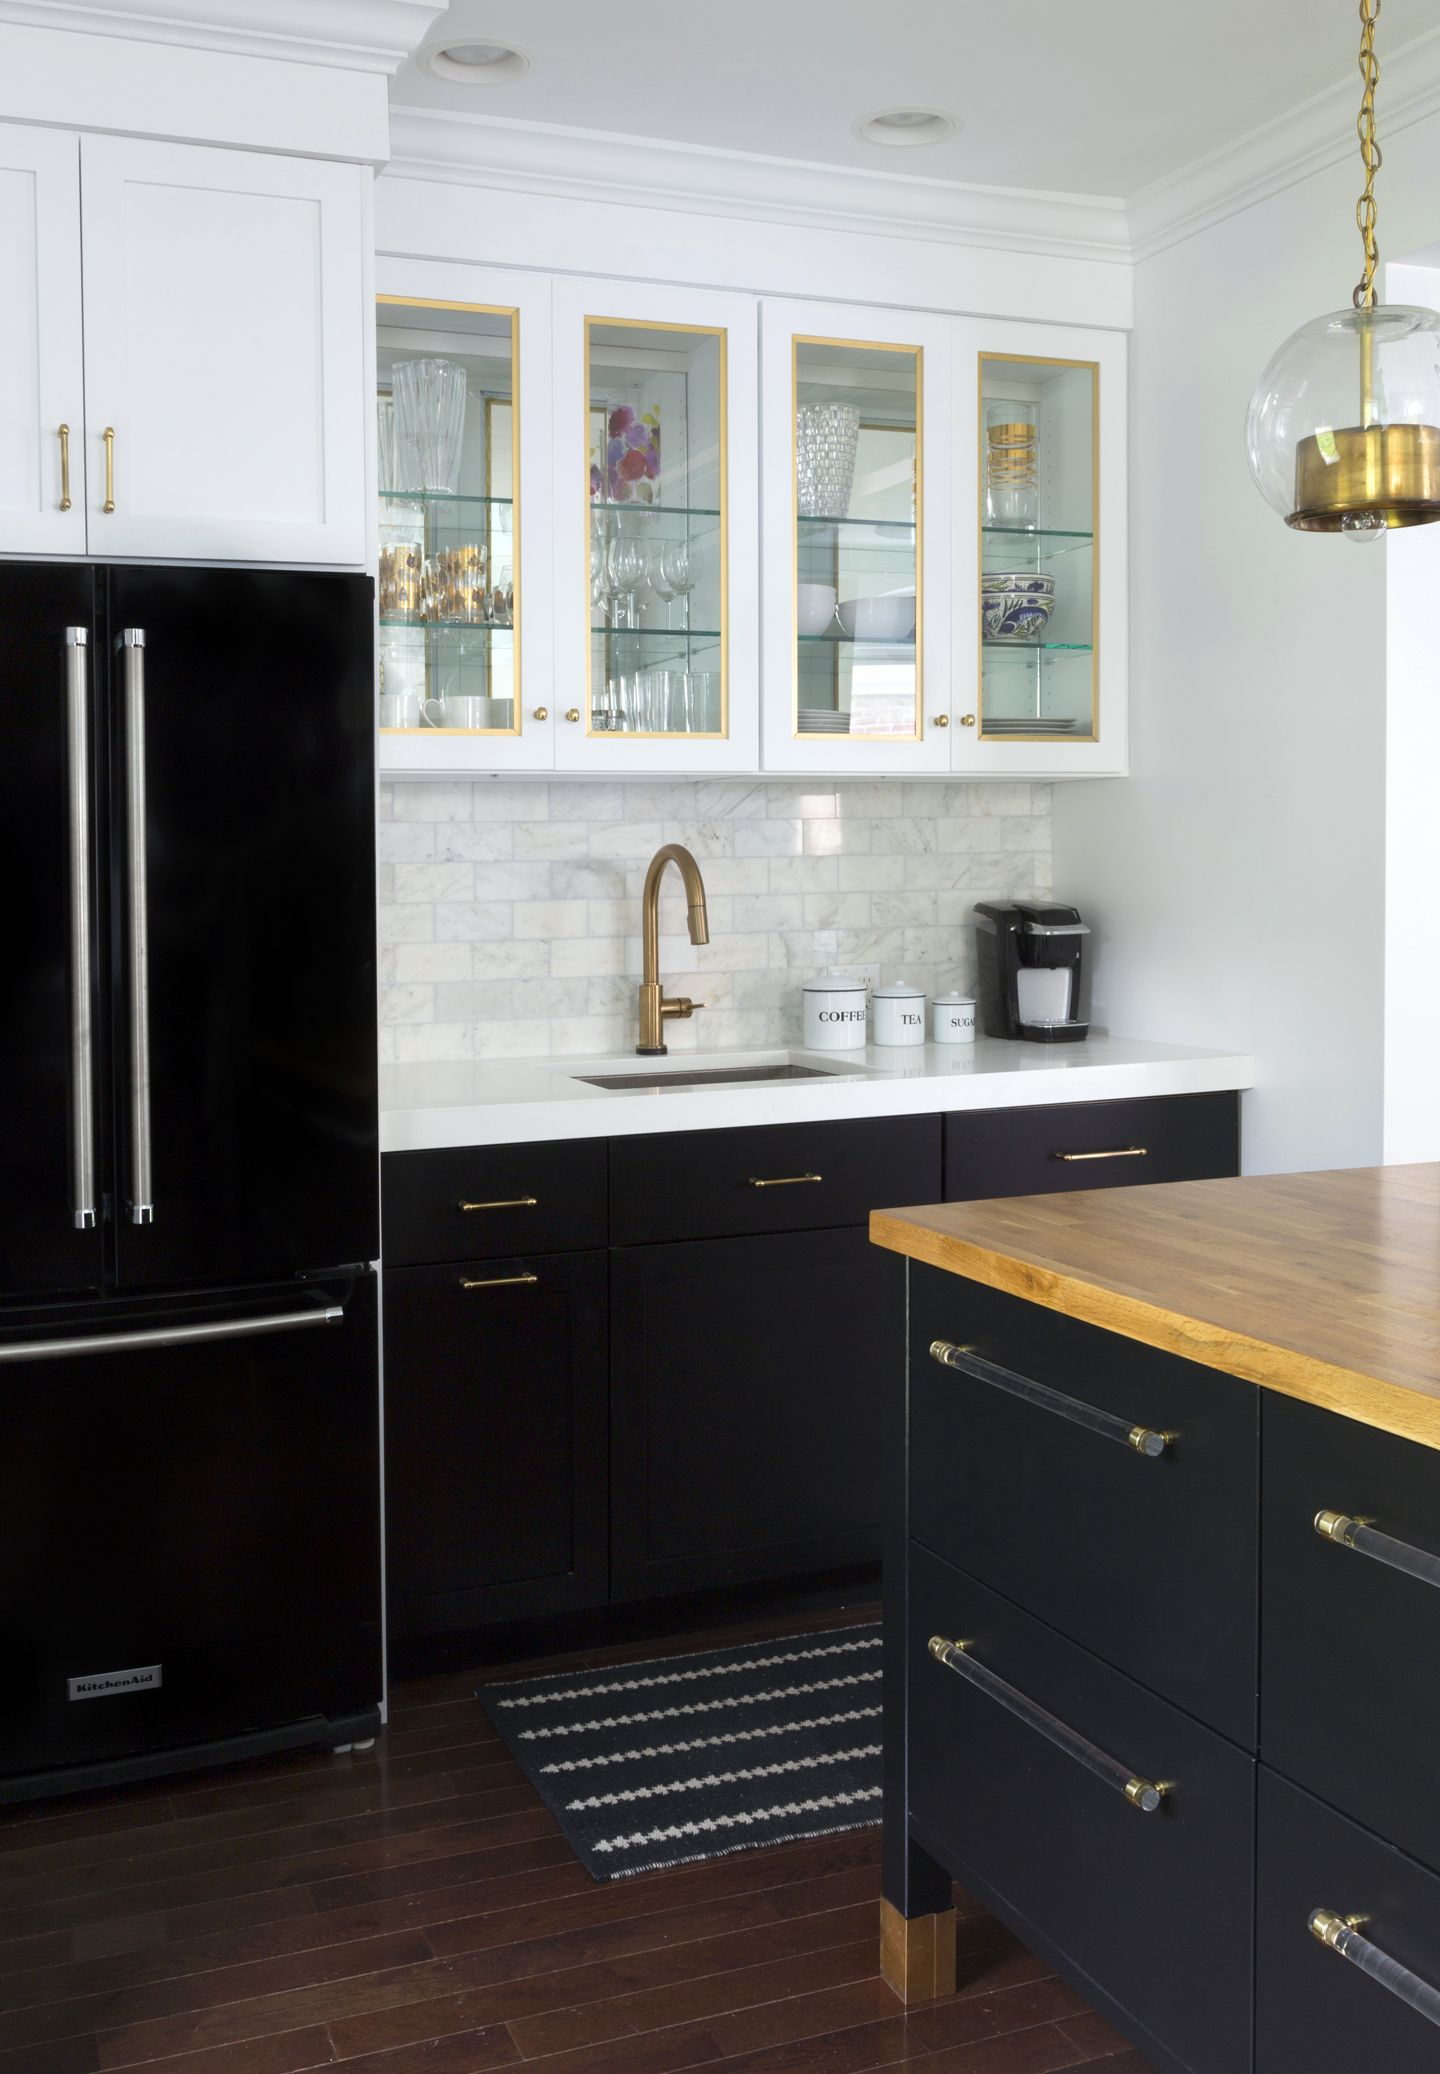 Black Refrigerator With Black Base Cabinets And White Upper Cabinets Marble Subway Tile Brass